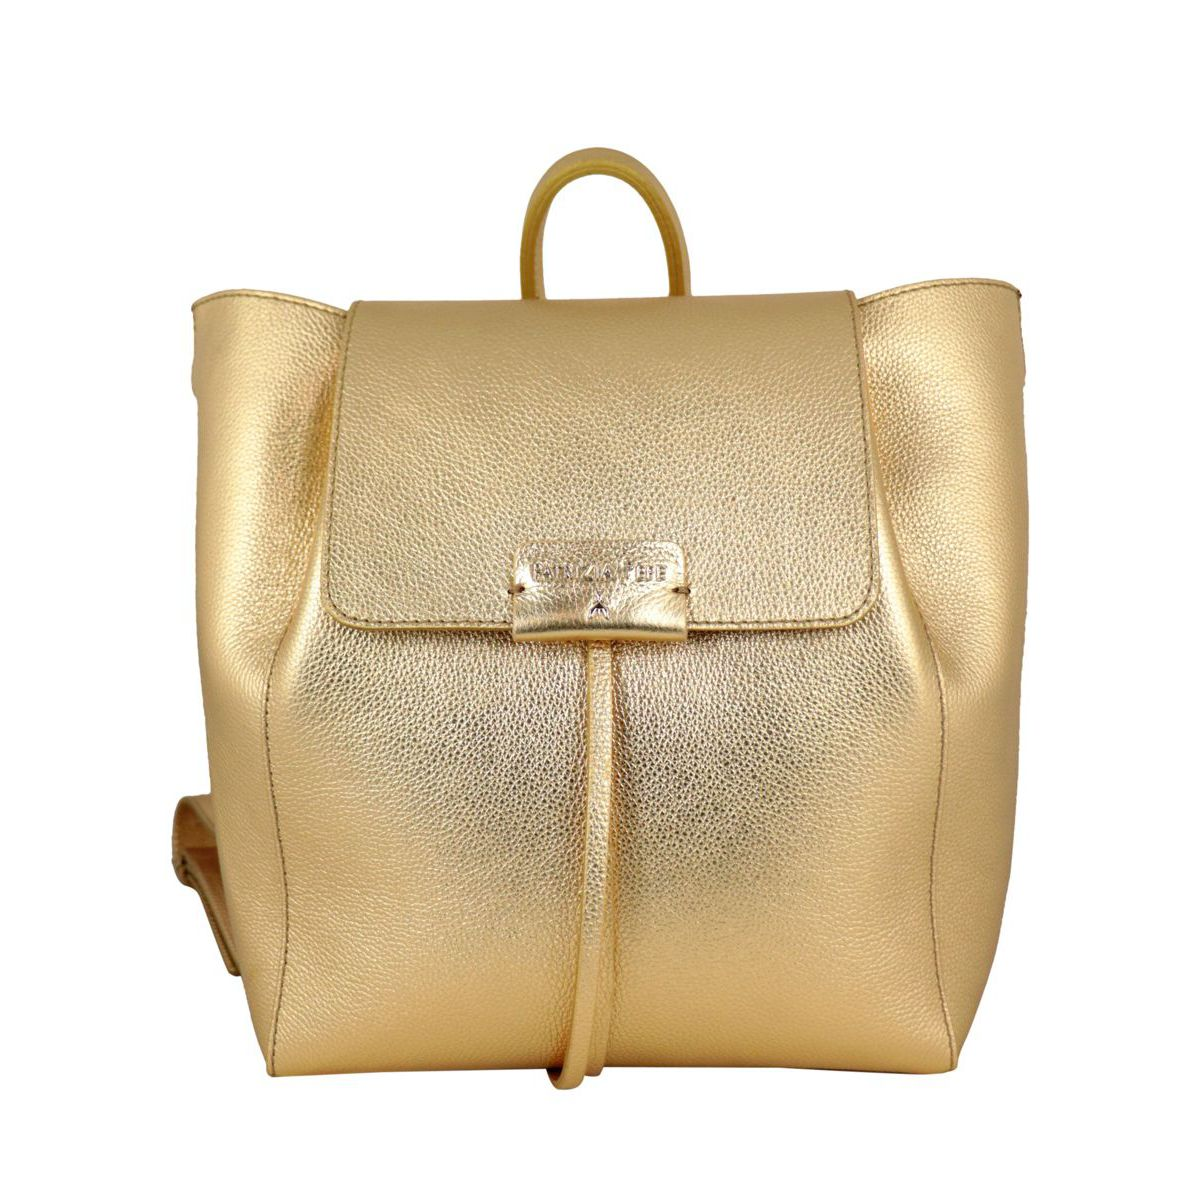 Textured leather backpack with logo Gold Patrizia Pepe